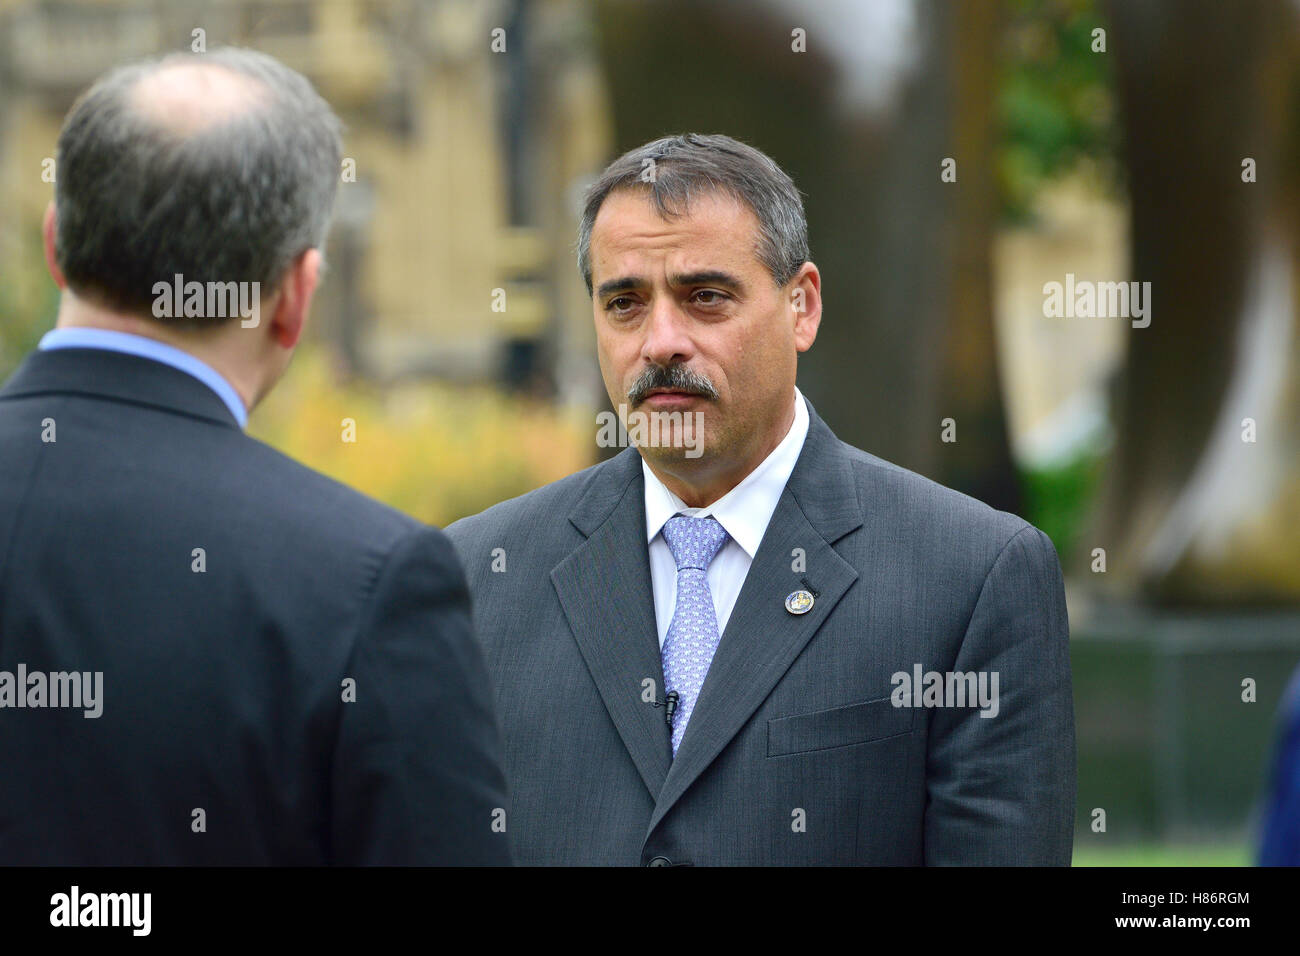 Thomas Galati - New York City Police Department Chief of Intelligence - being interviewed on College Green, Westminster, - Stock Image